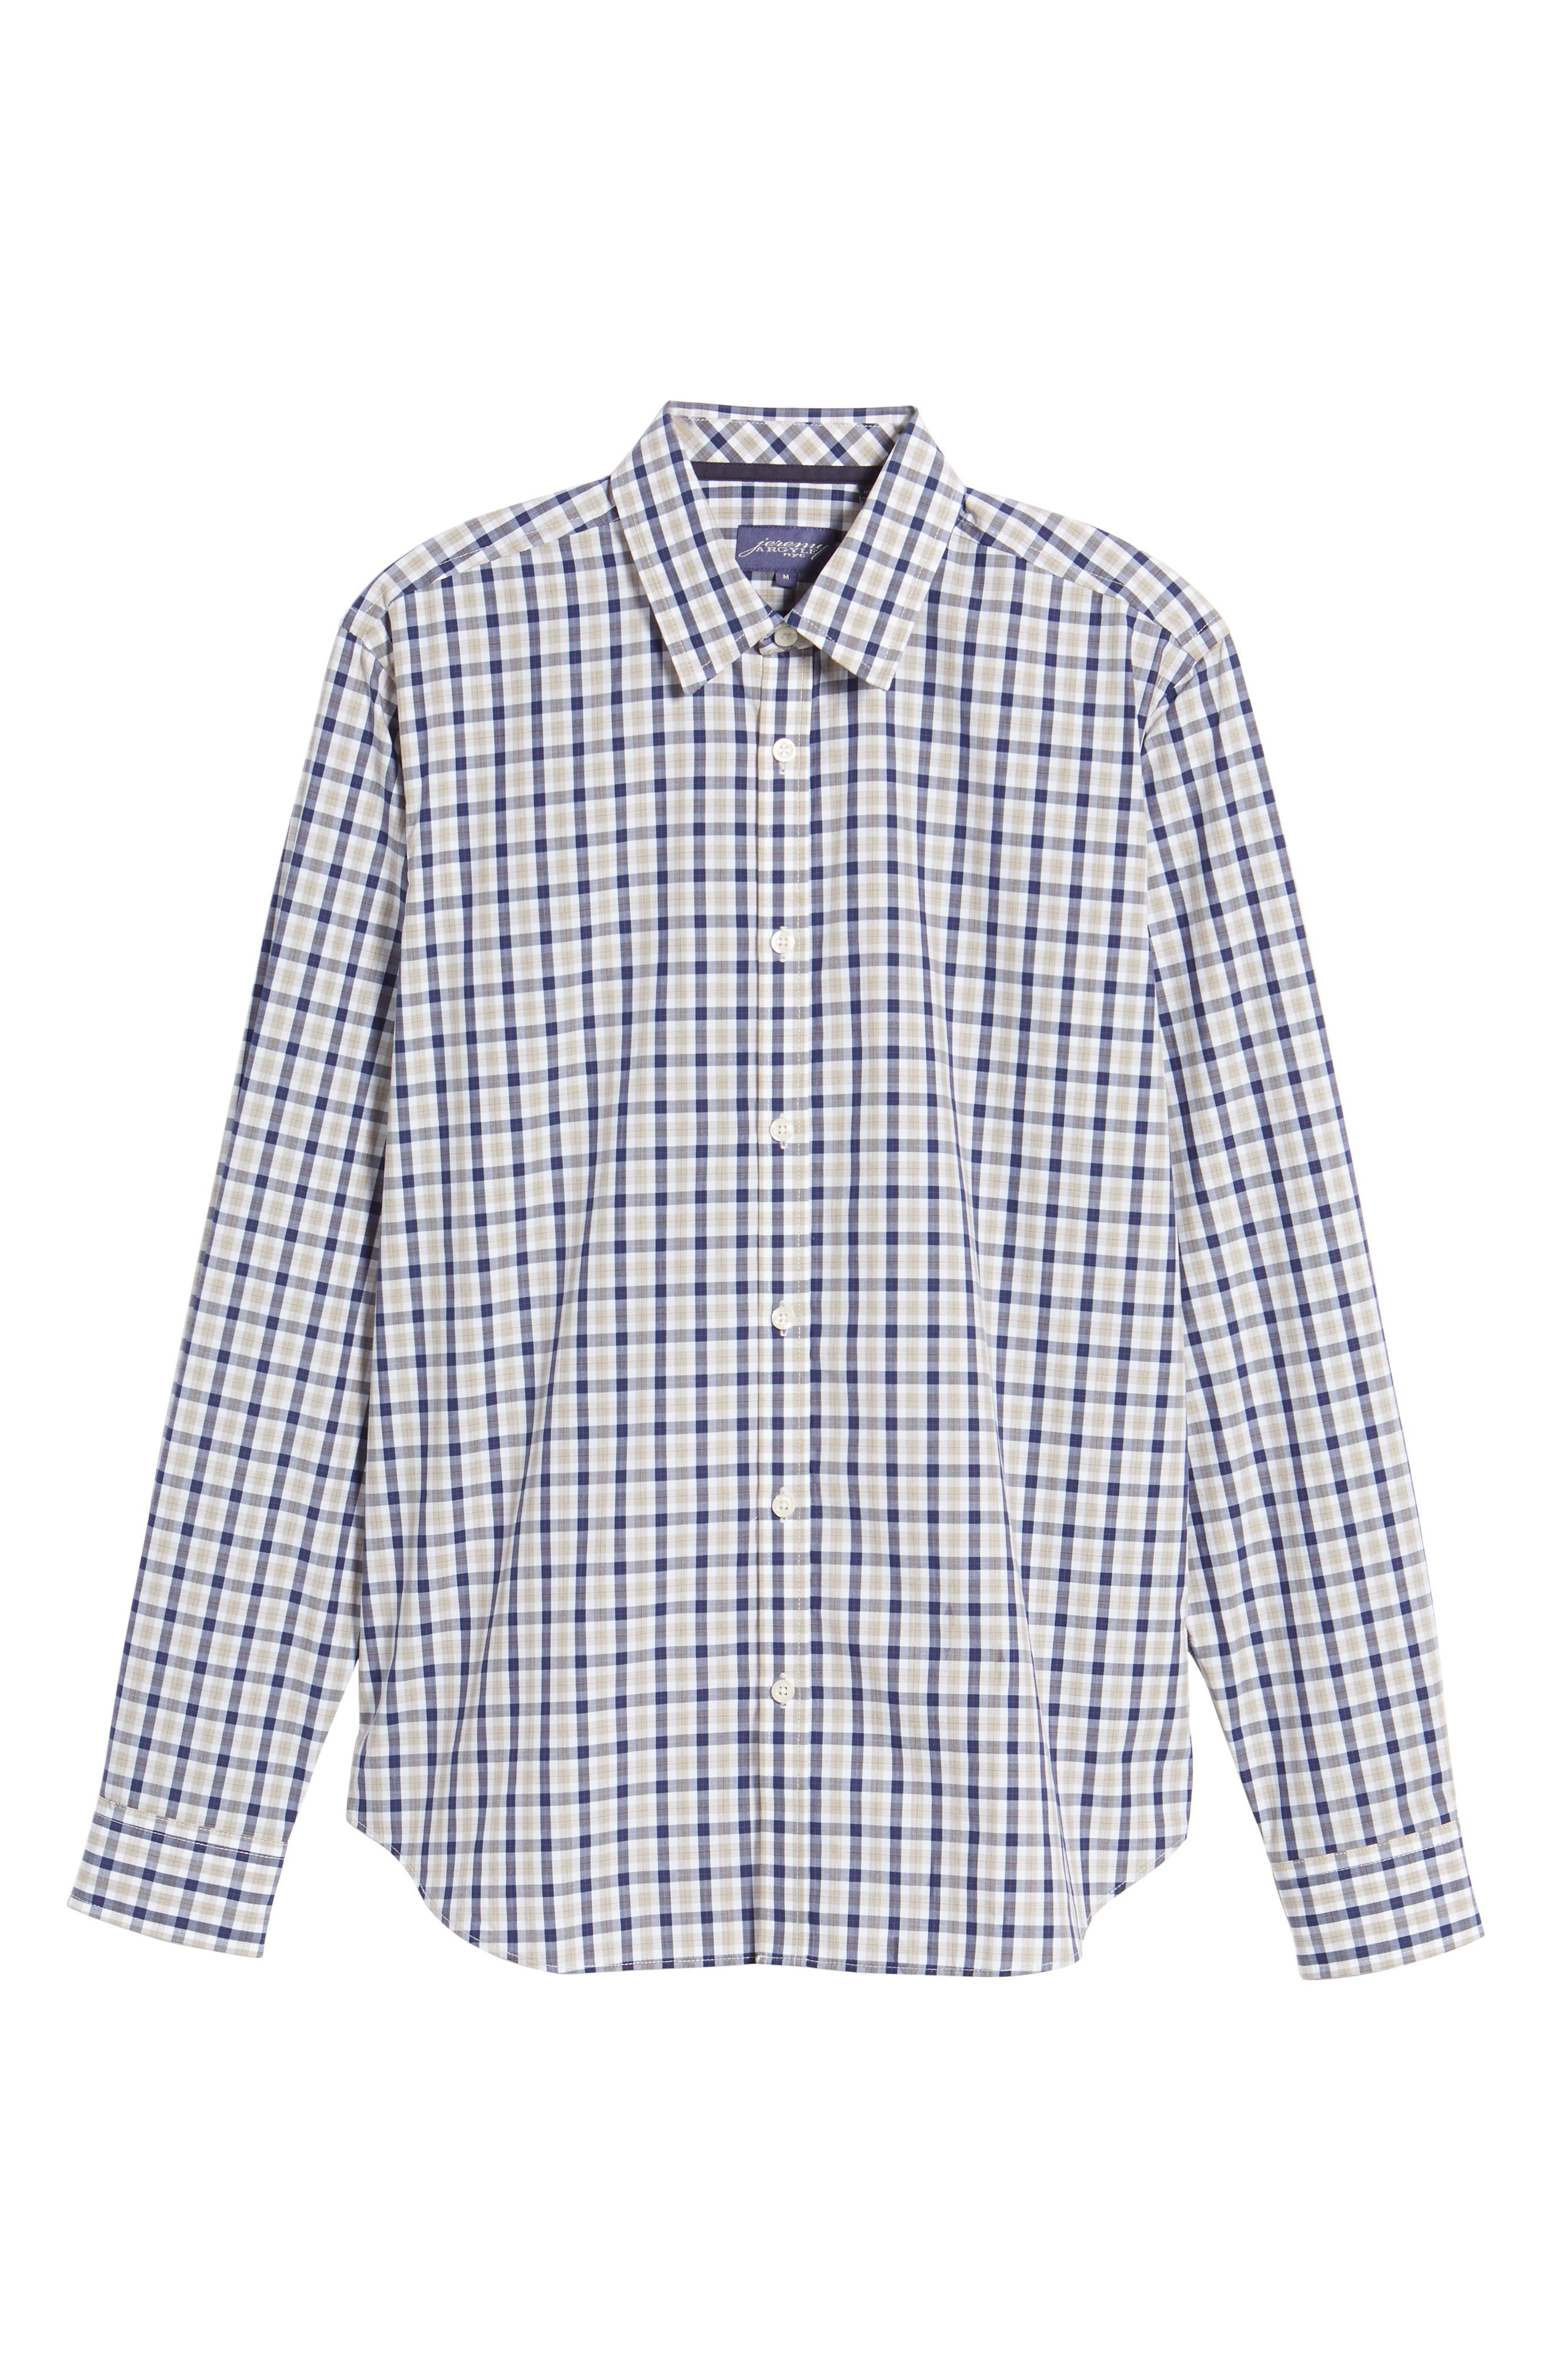 Fitted Plaid Sport Shirt,                             Alternate thumbnail 6, color,                             Dark Blue